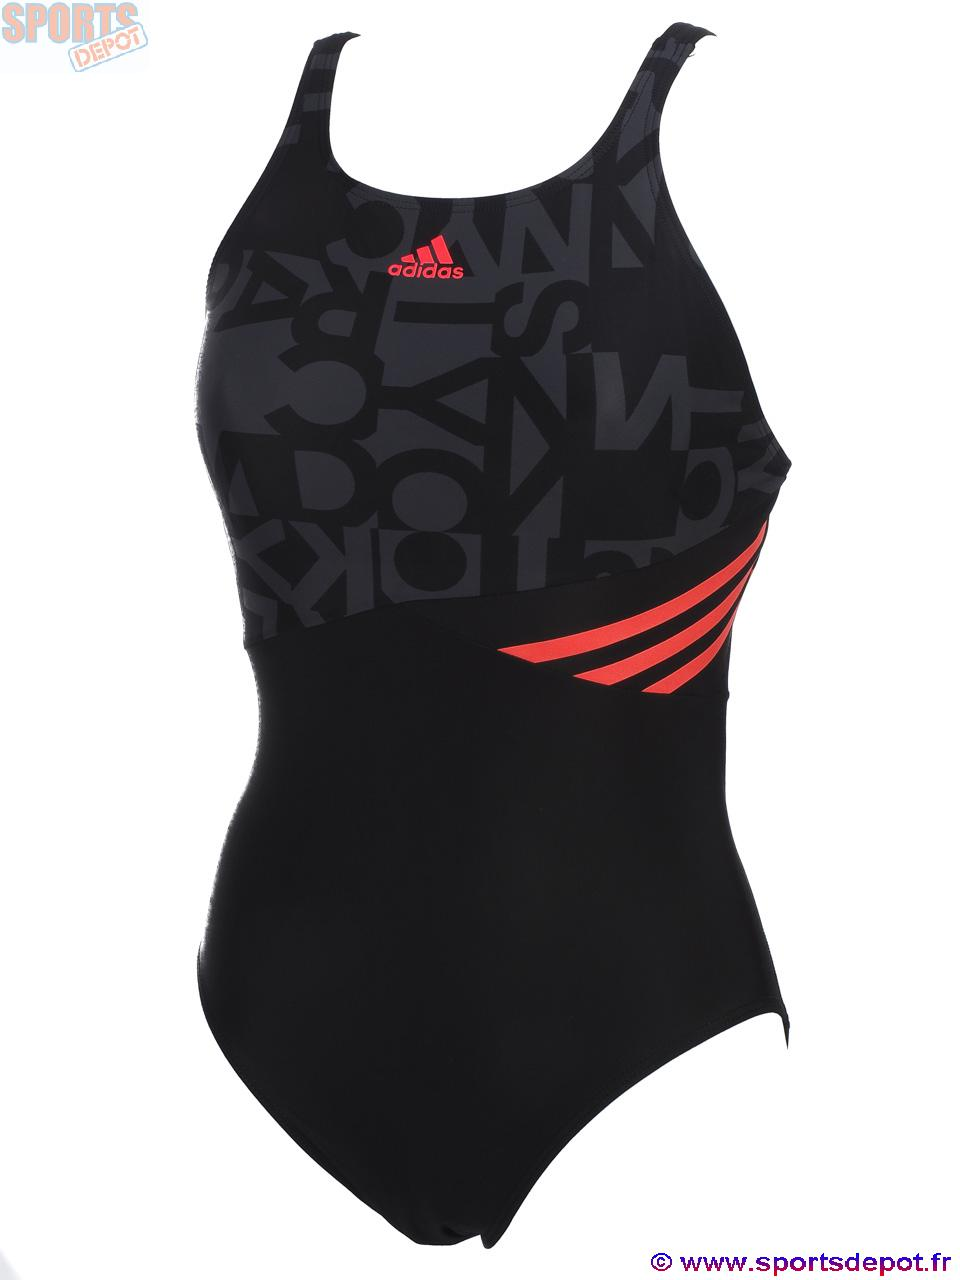 maillot bain adidas femme 1 piece maillot bain adidas. Black Bedroom Furniture Sets. Home Design Ideas